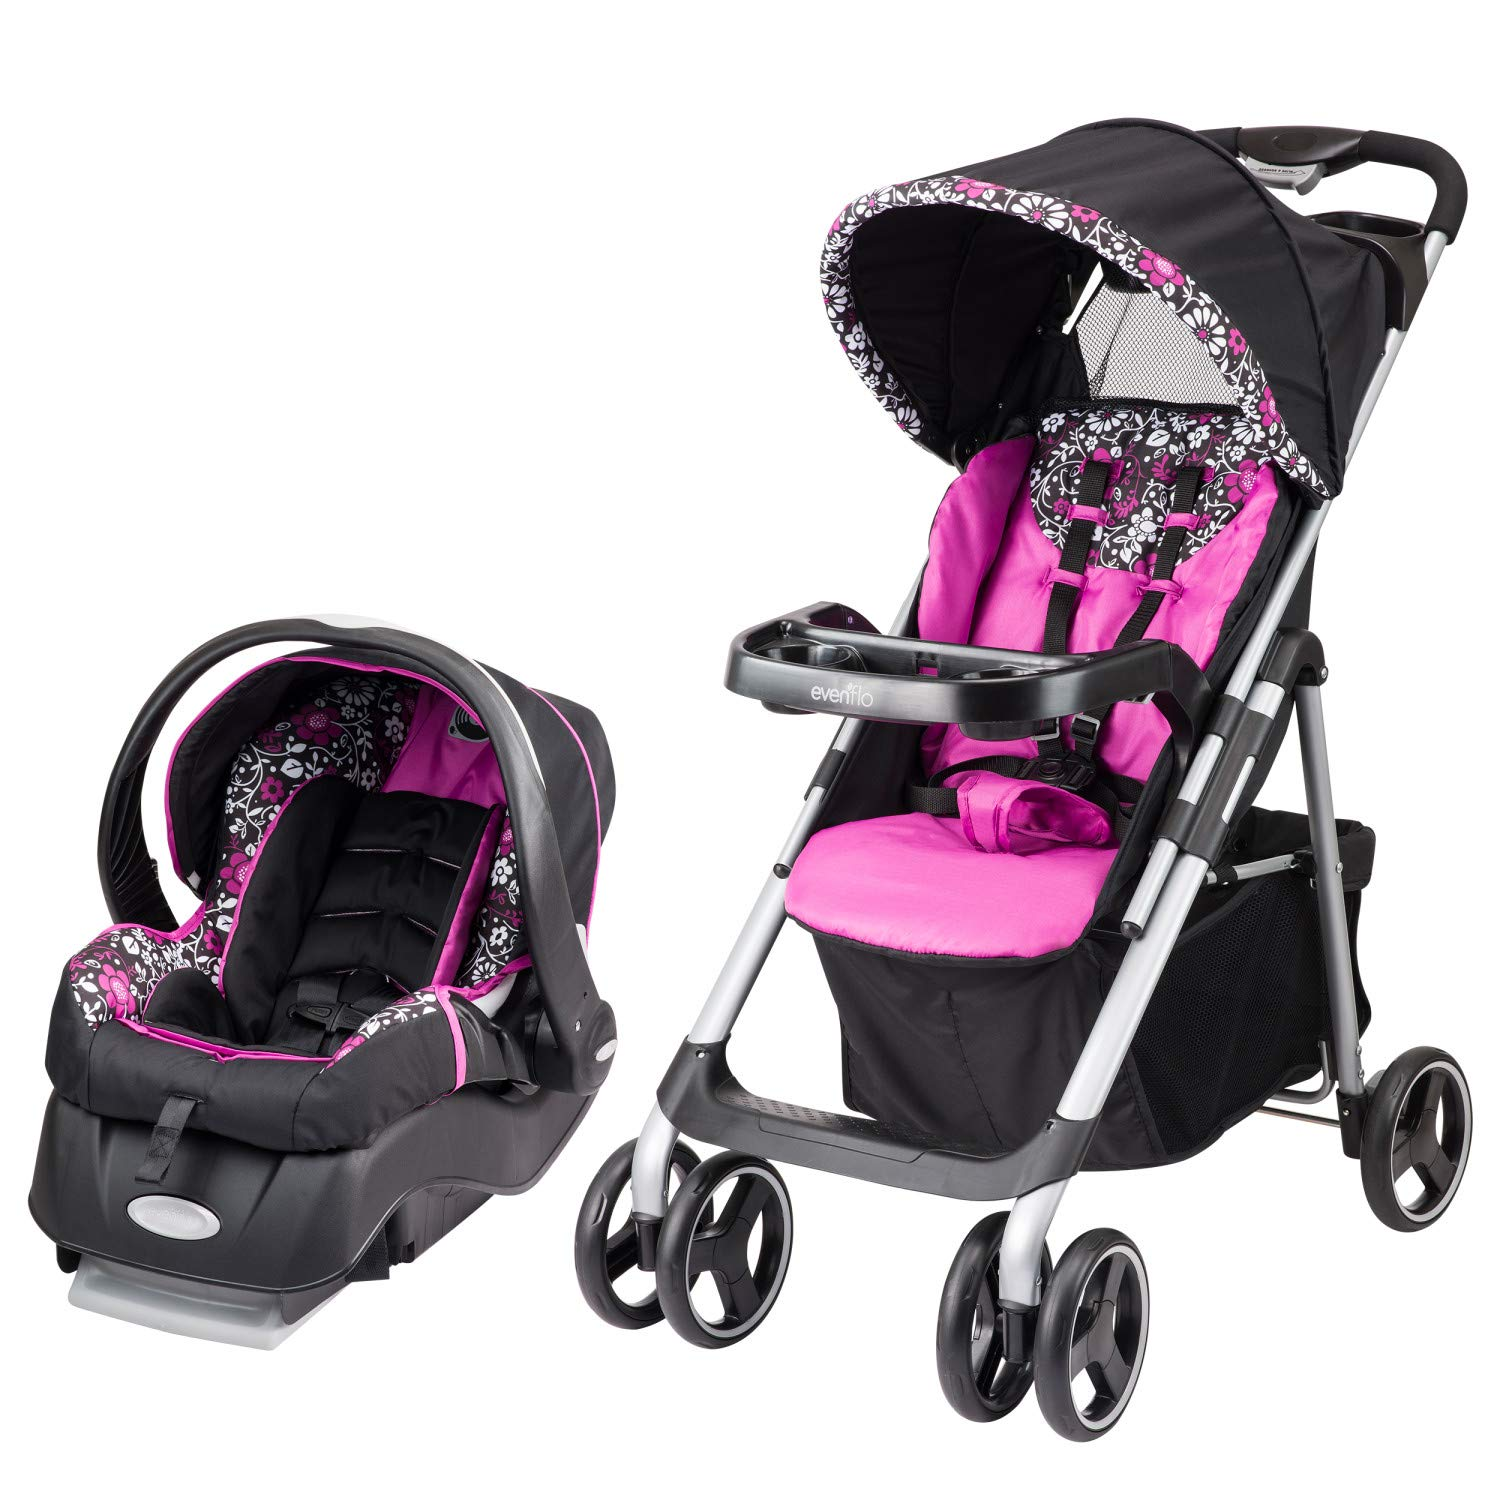 Evenflo Vive Travel System with Embrace Infant Car Seat, Daphne by Evenflo